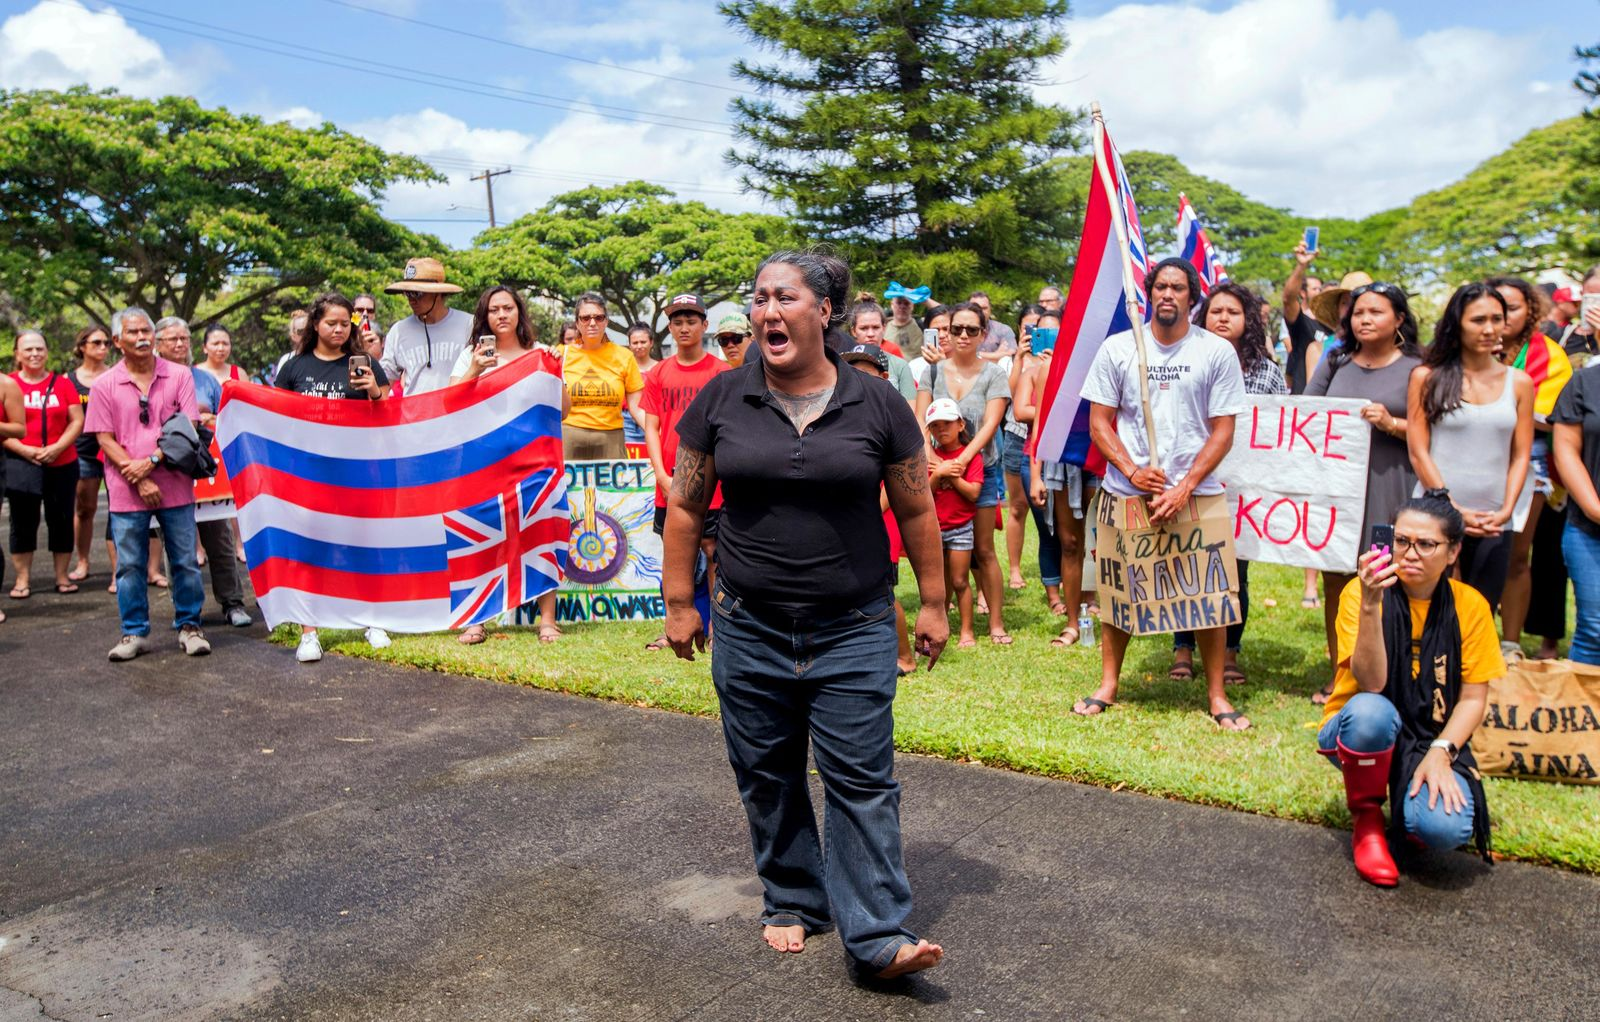 Kumu (teacher) Hinaleimoana Wong-Kalu performs a chant before meeting with University of Hawaii at Manoa President David Lassner on the campus in Honolulu Friday, July 19, 2019. All are protesting the construction of the Thirty Meter Telescope on Mauna Kea on the Big Island of Hawaii. (Dennis Oda/Honolulu Star-Advertiser via AP)